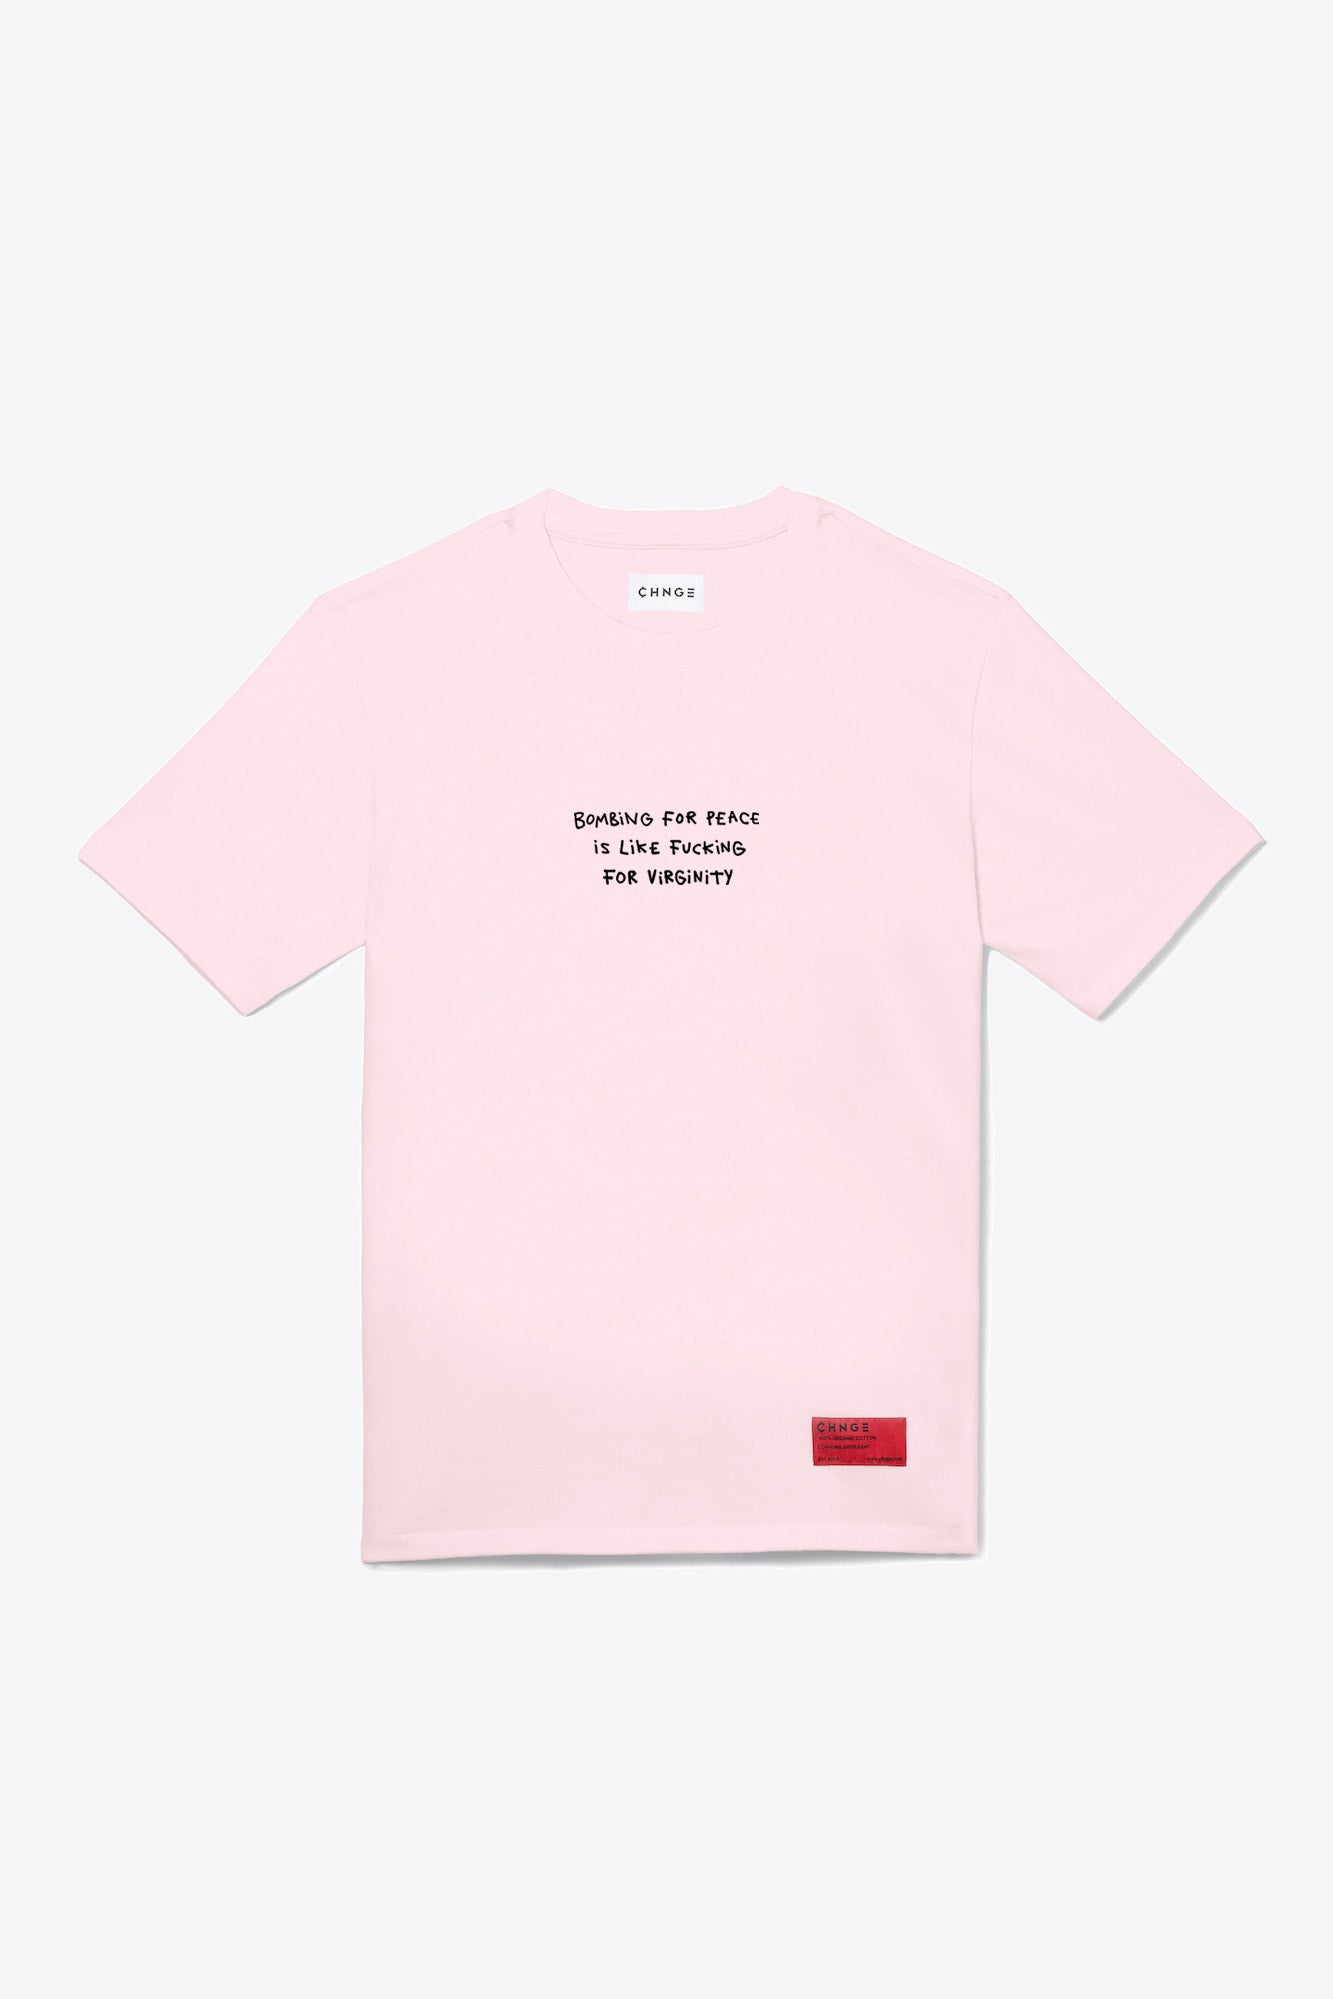 Bombing for Peace Tee (Pink)